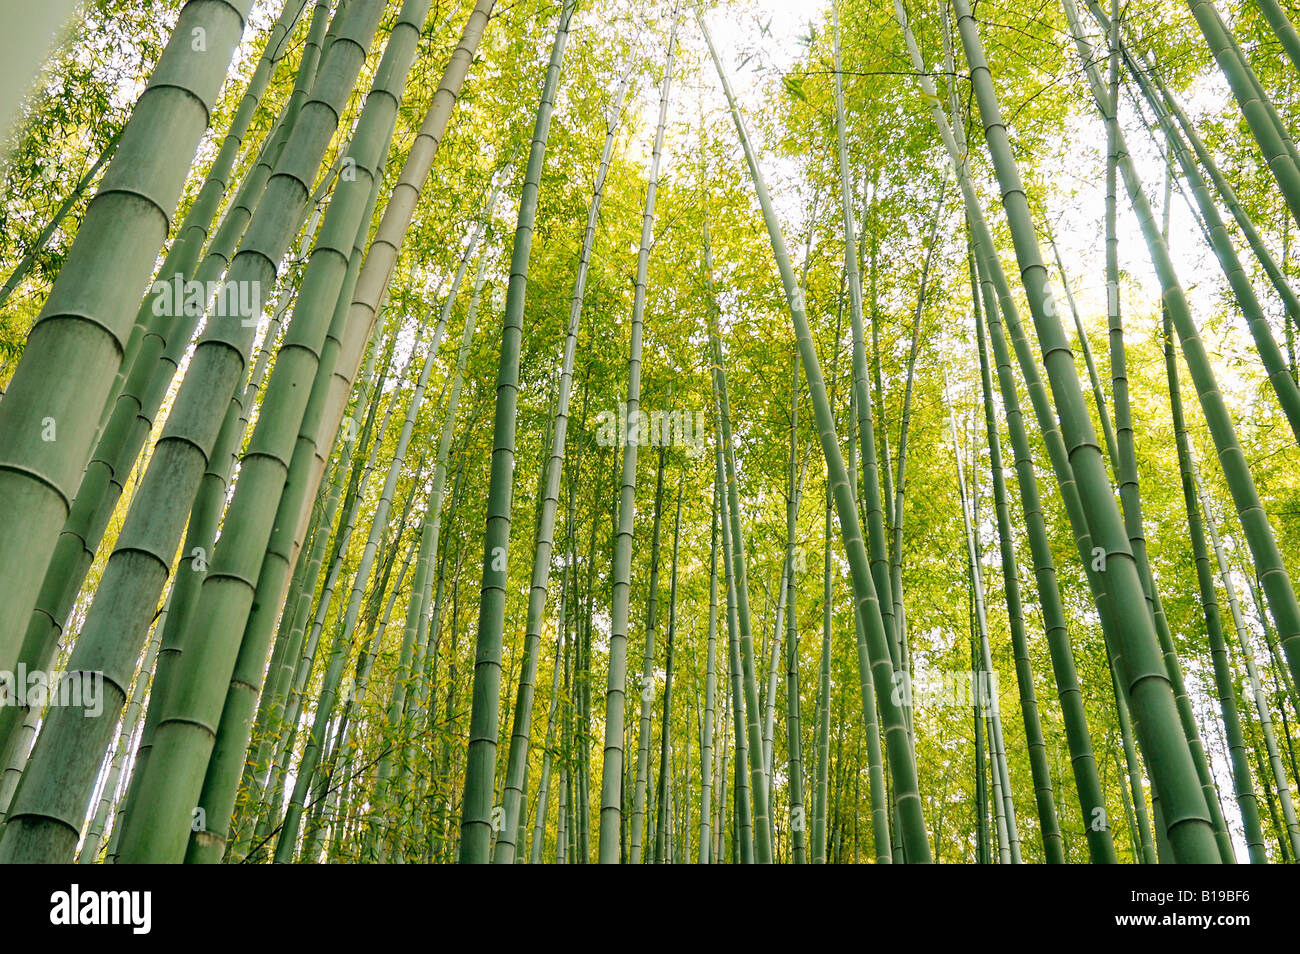 bamboo forest Kyoto Japan - Stock Image